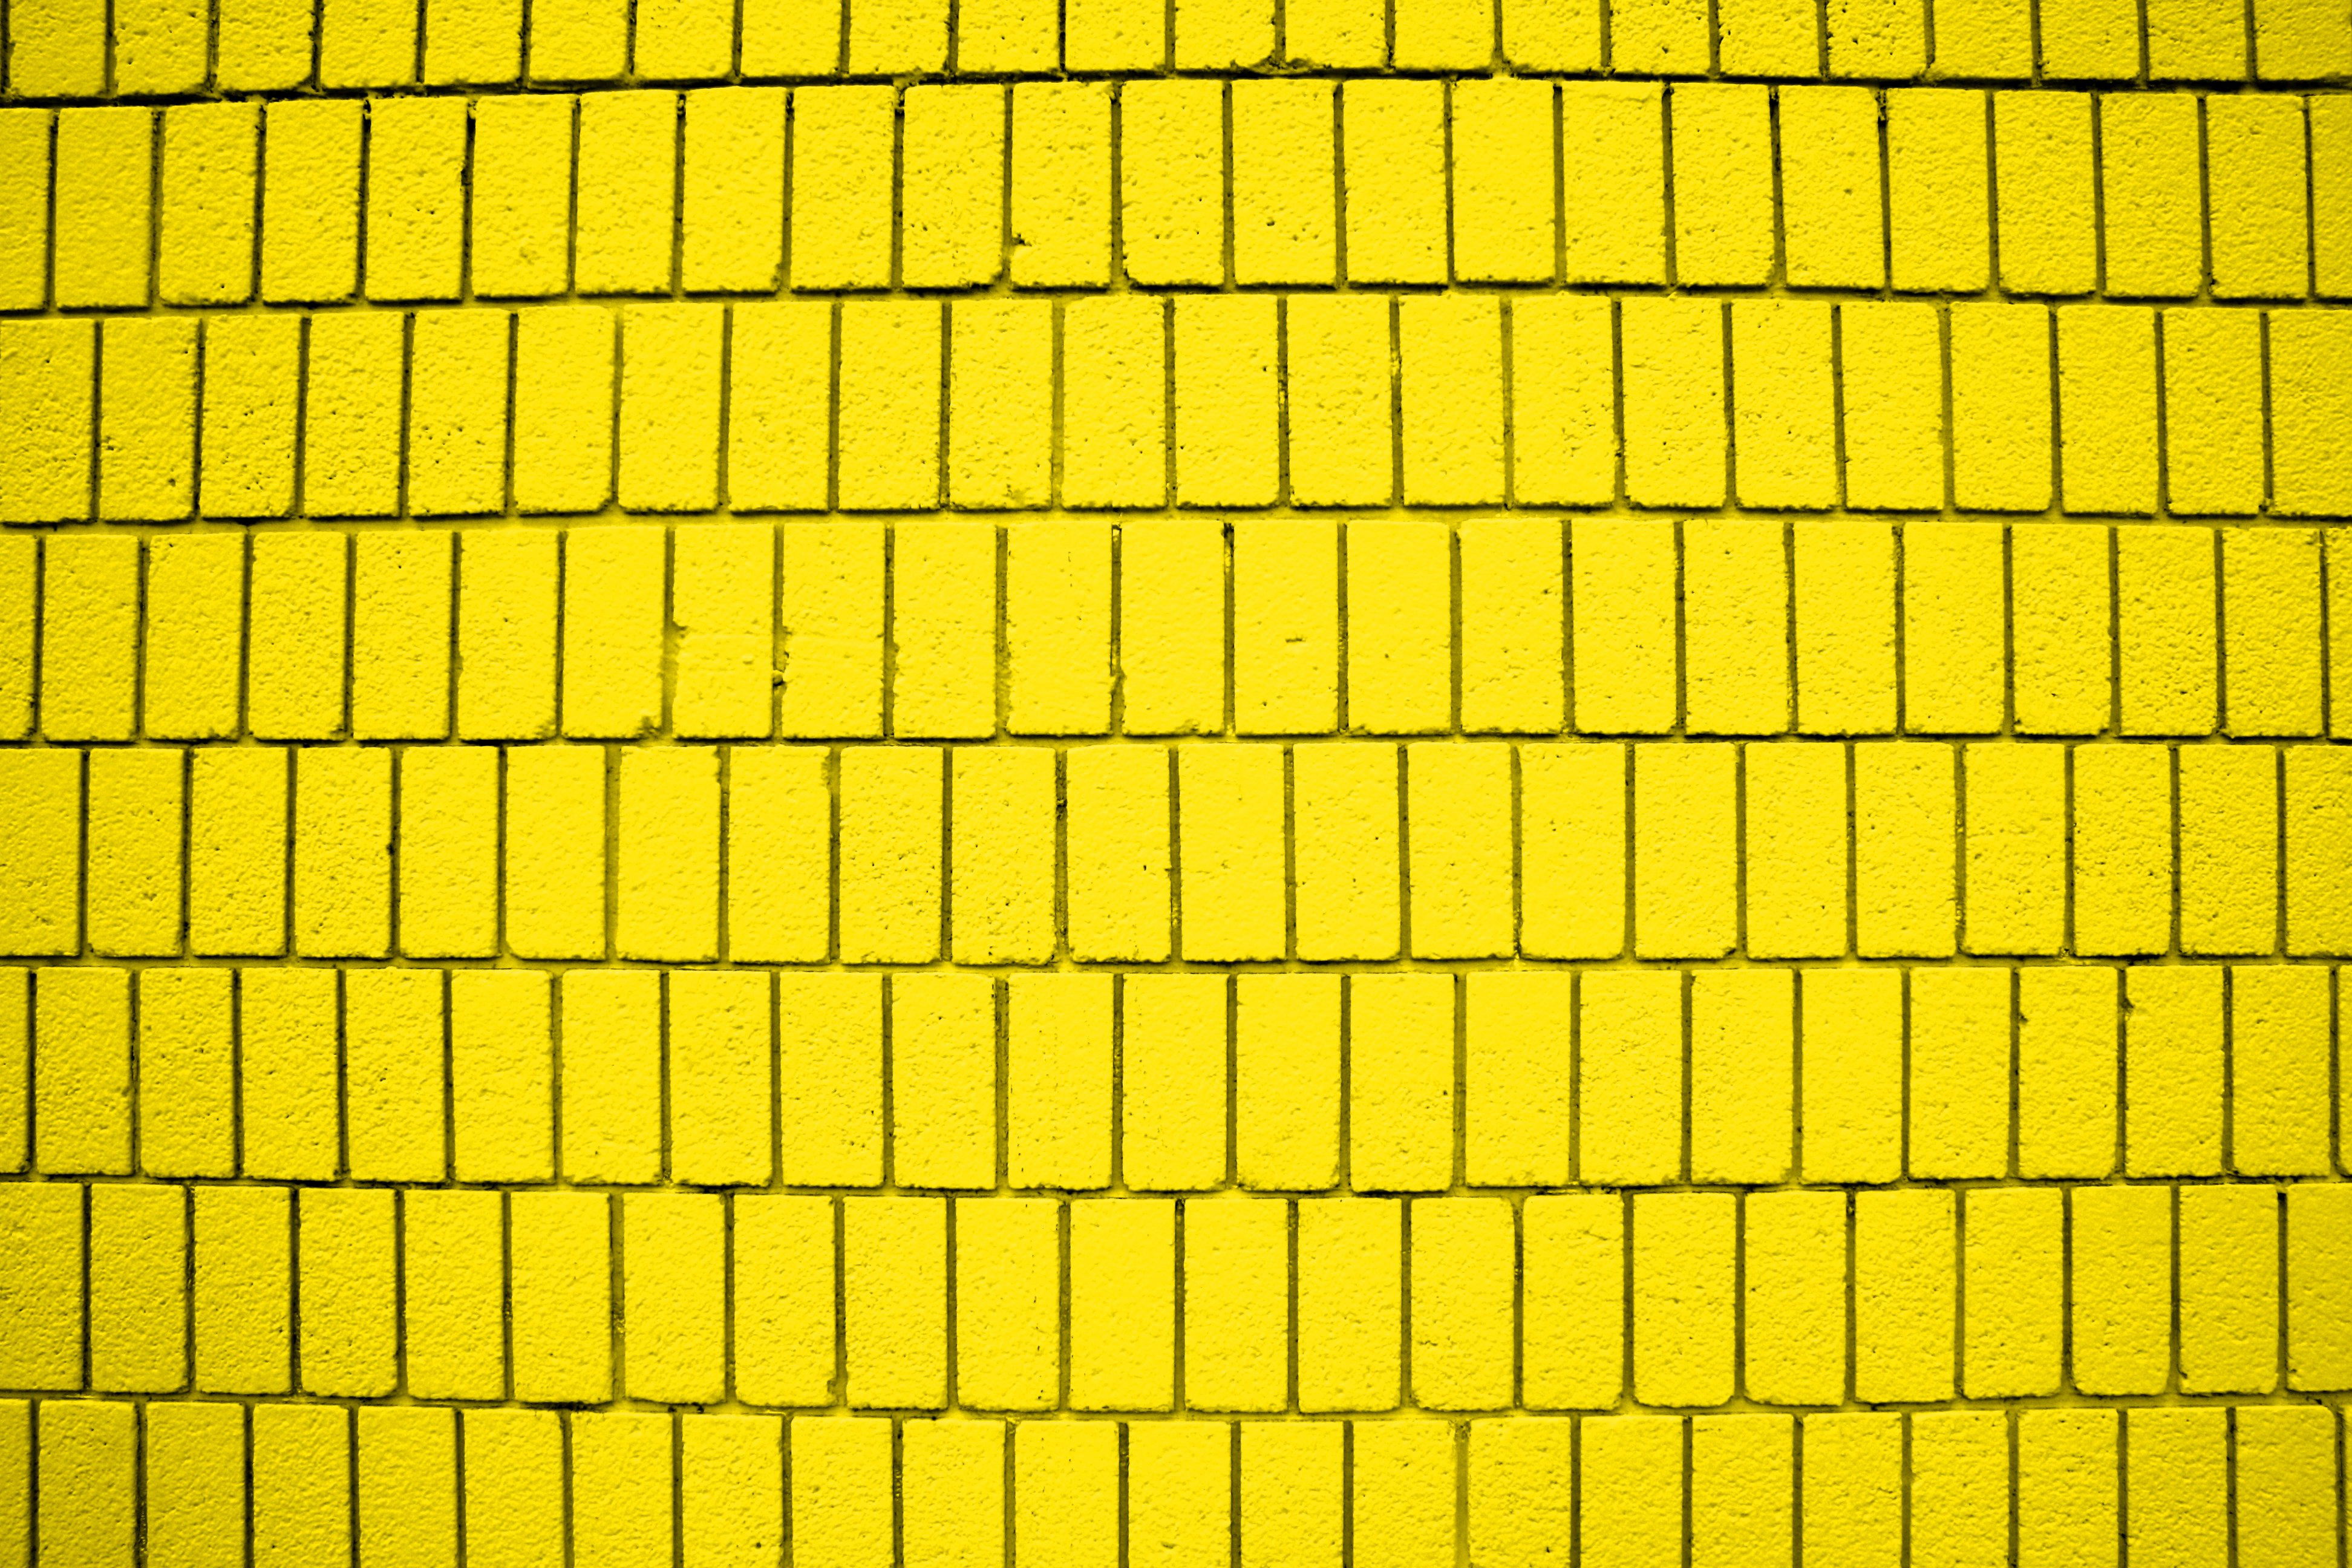 Bright Yellow Brick Wall Texture with Vertical Bricks Picture | Free ...